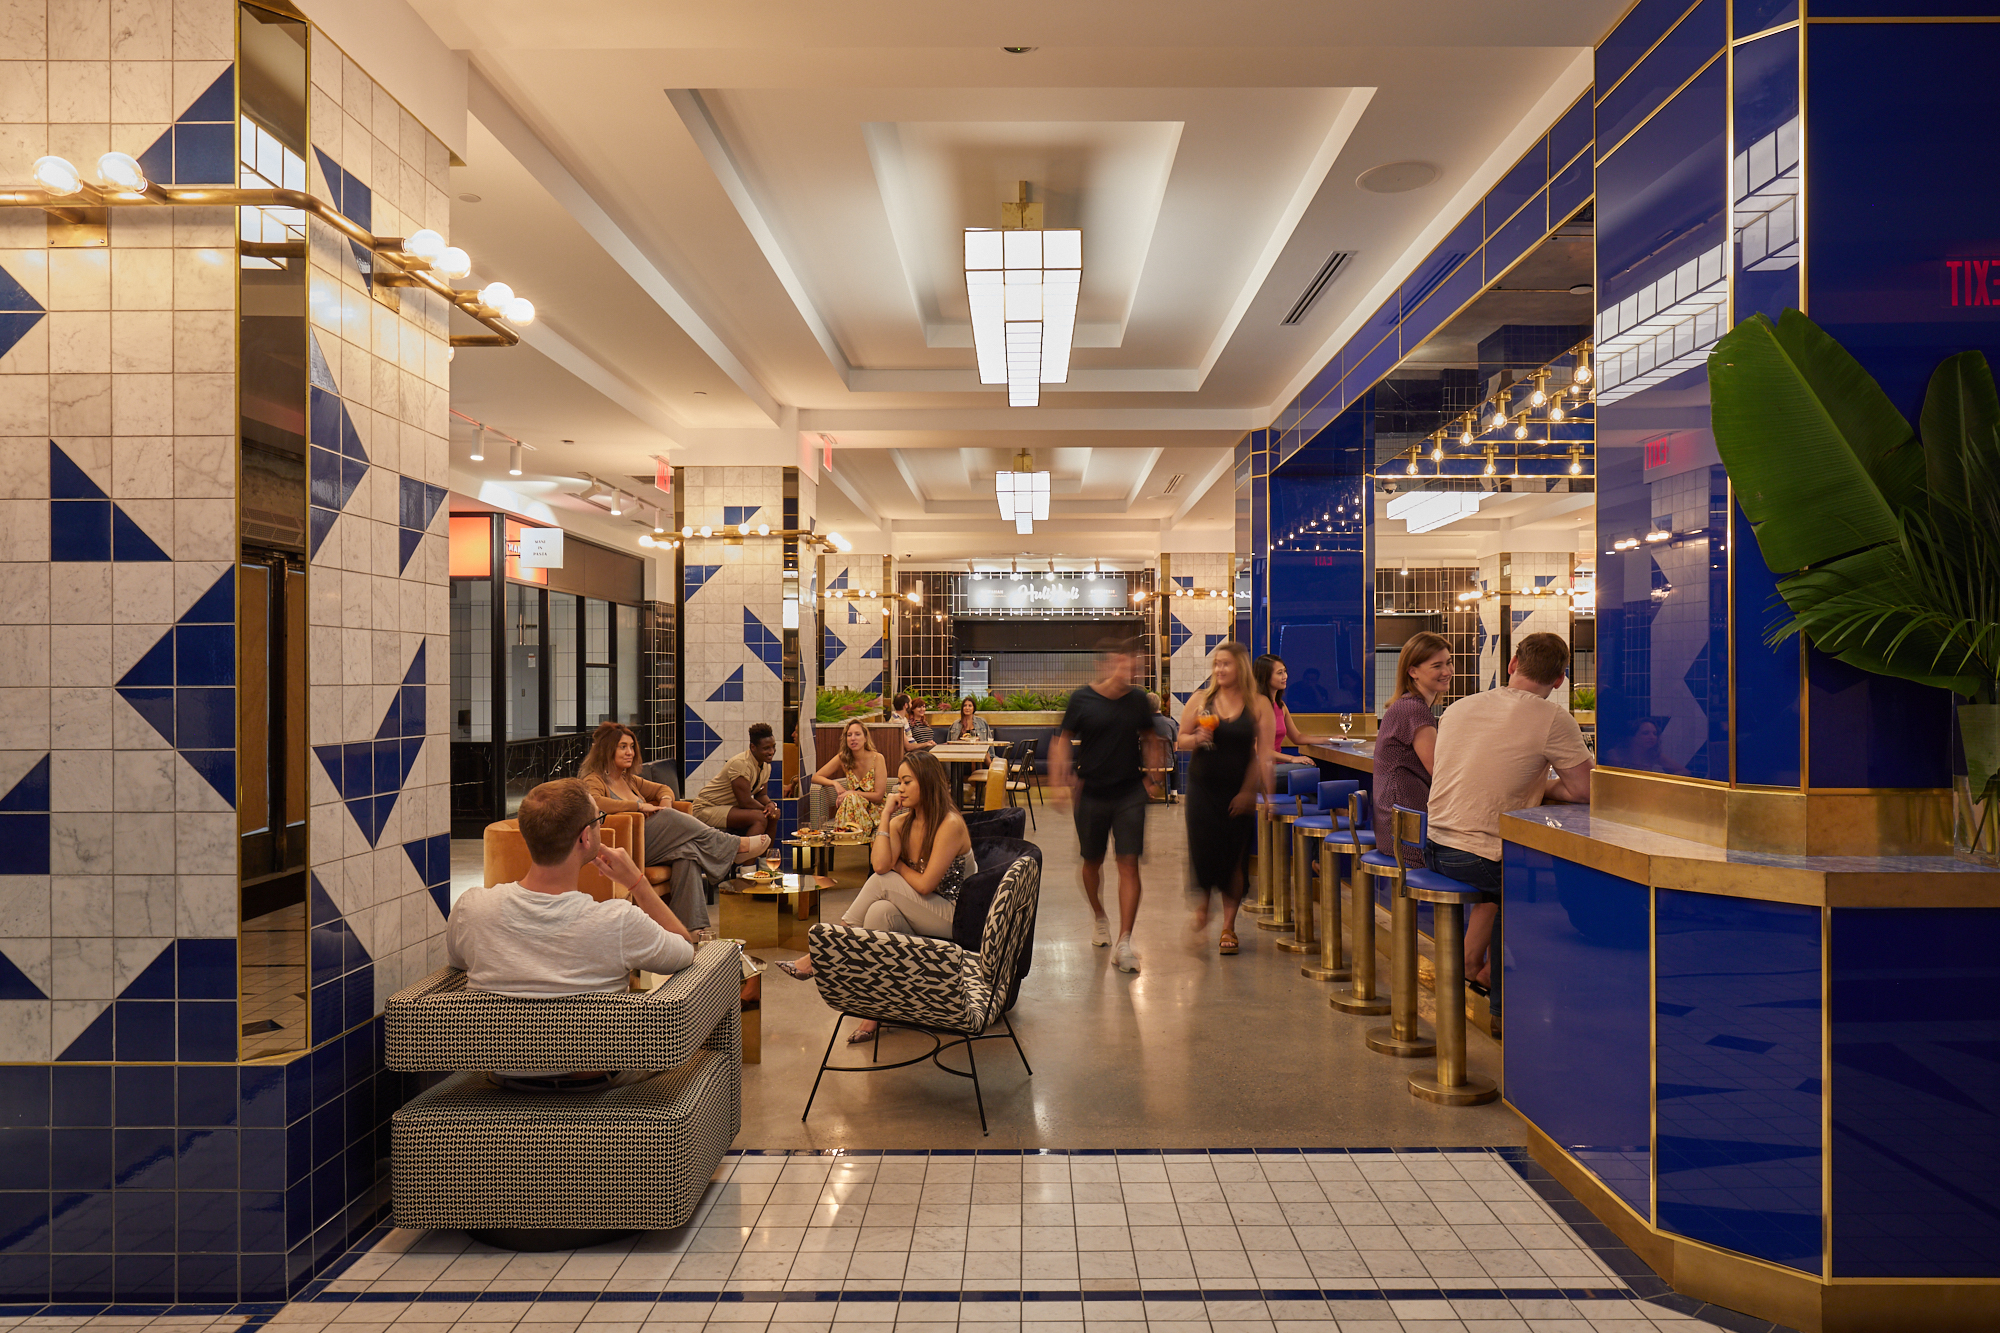 See inside The Deco, an eclectic new food hall in Midtown West  19sqft